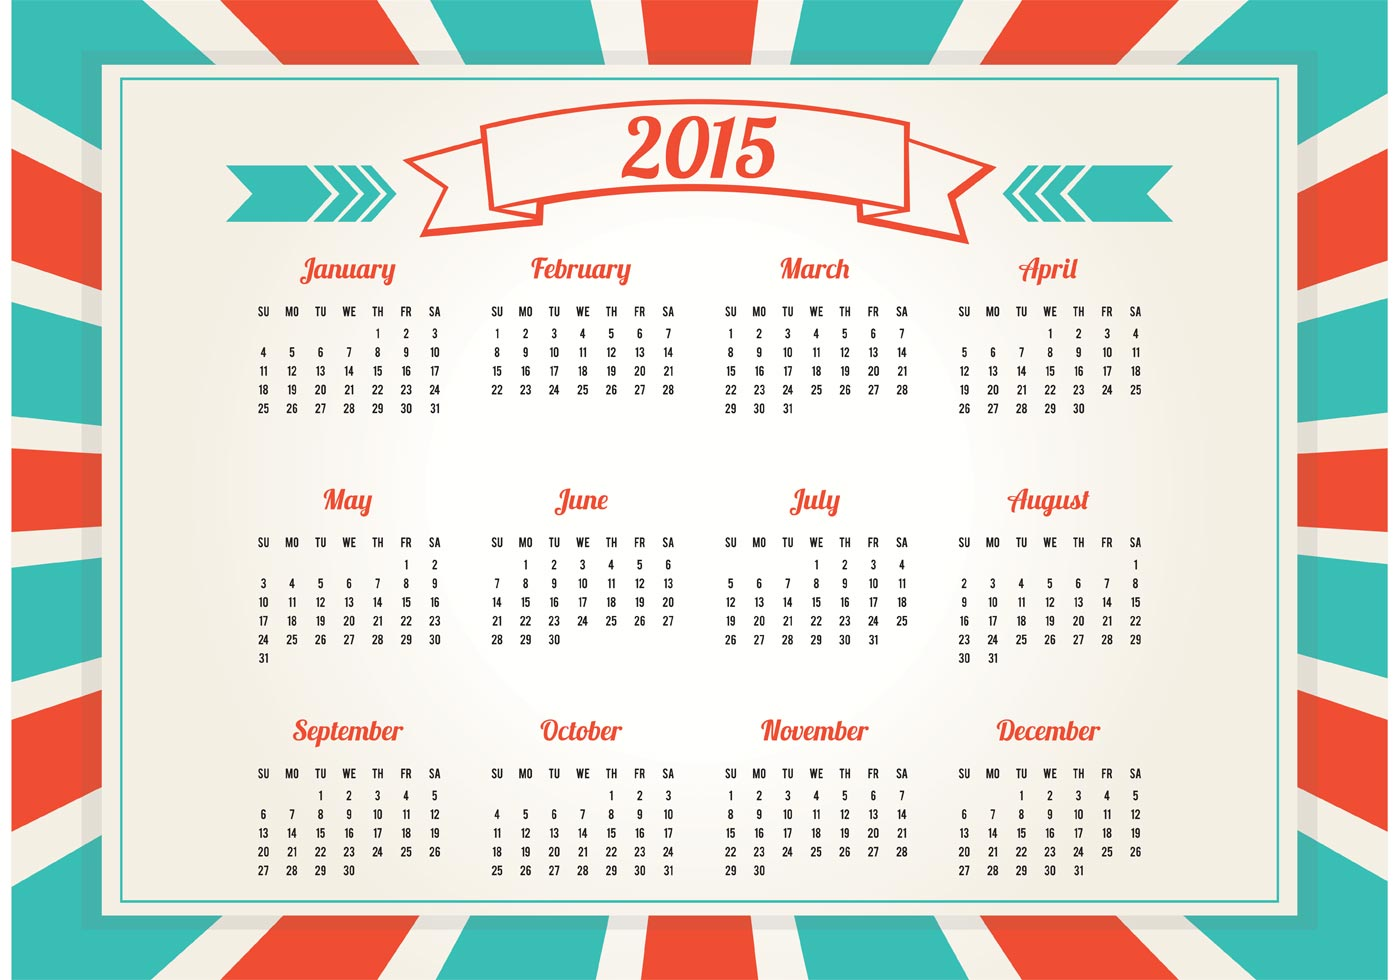 Calendar Vintage Vector : Retro style calendar download free vector art